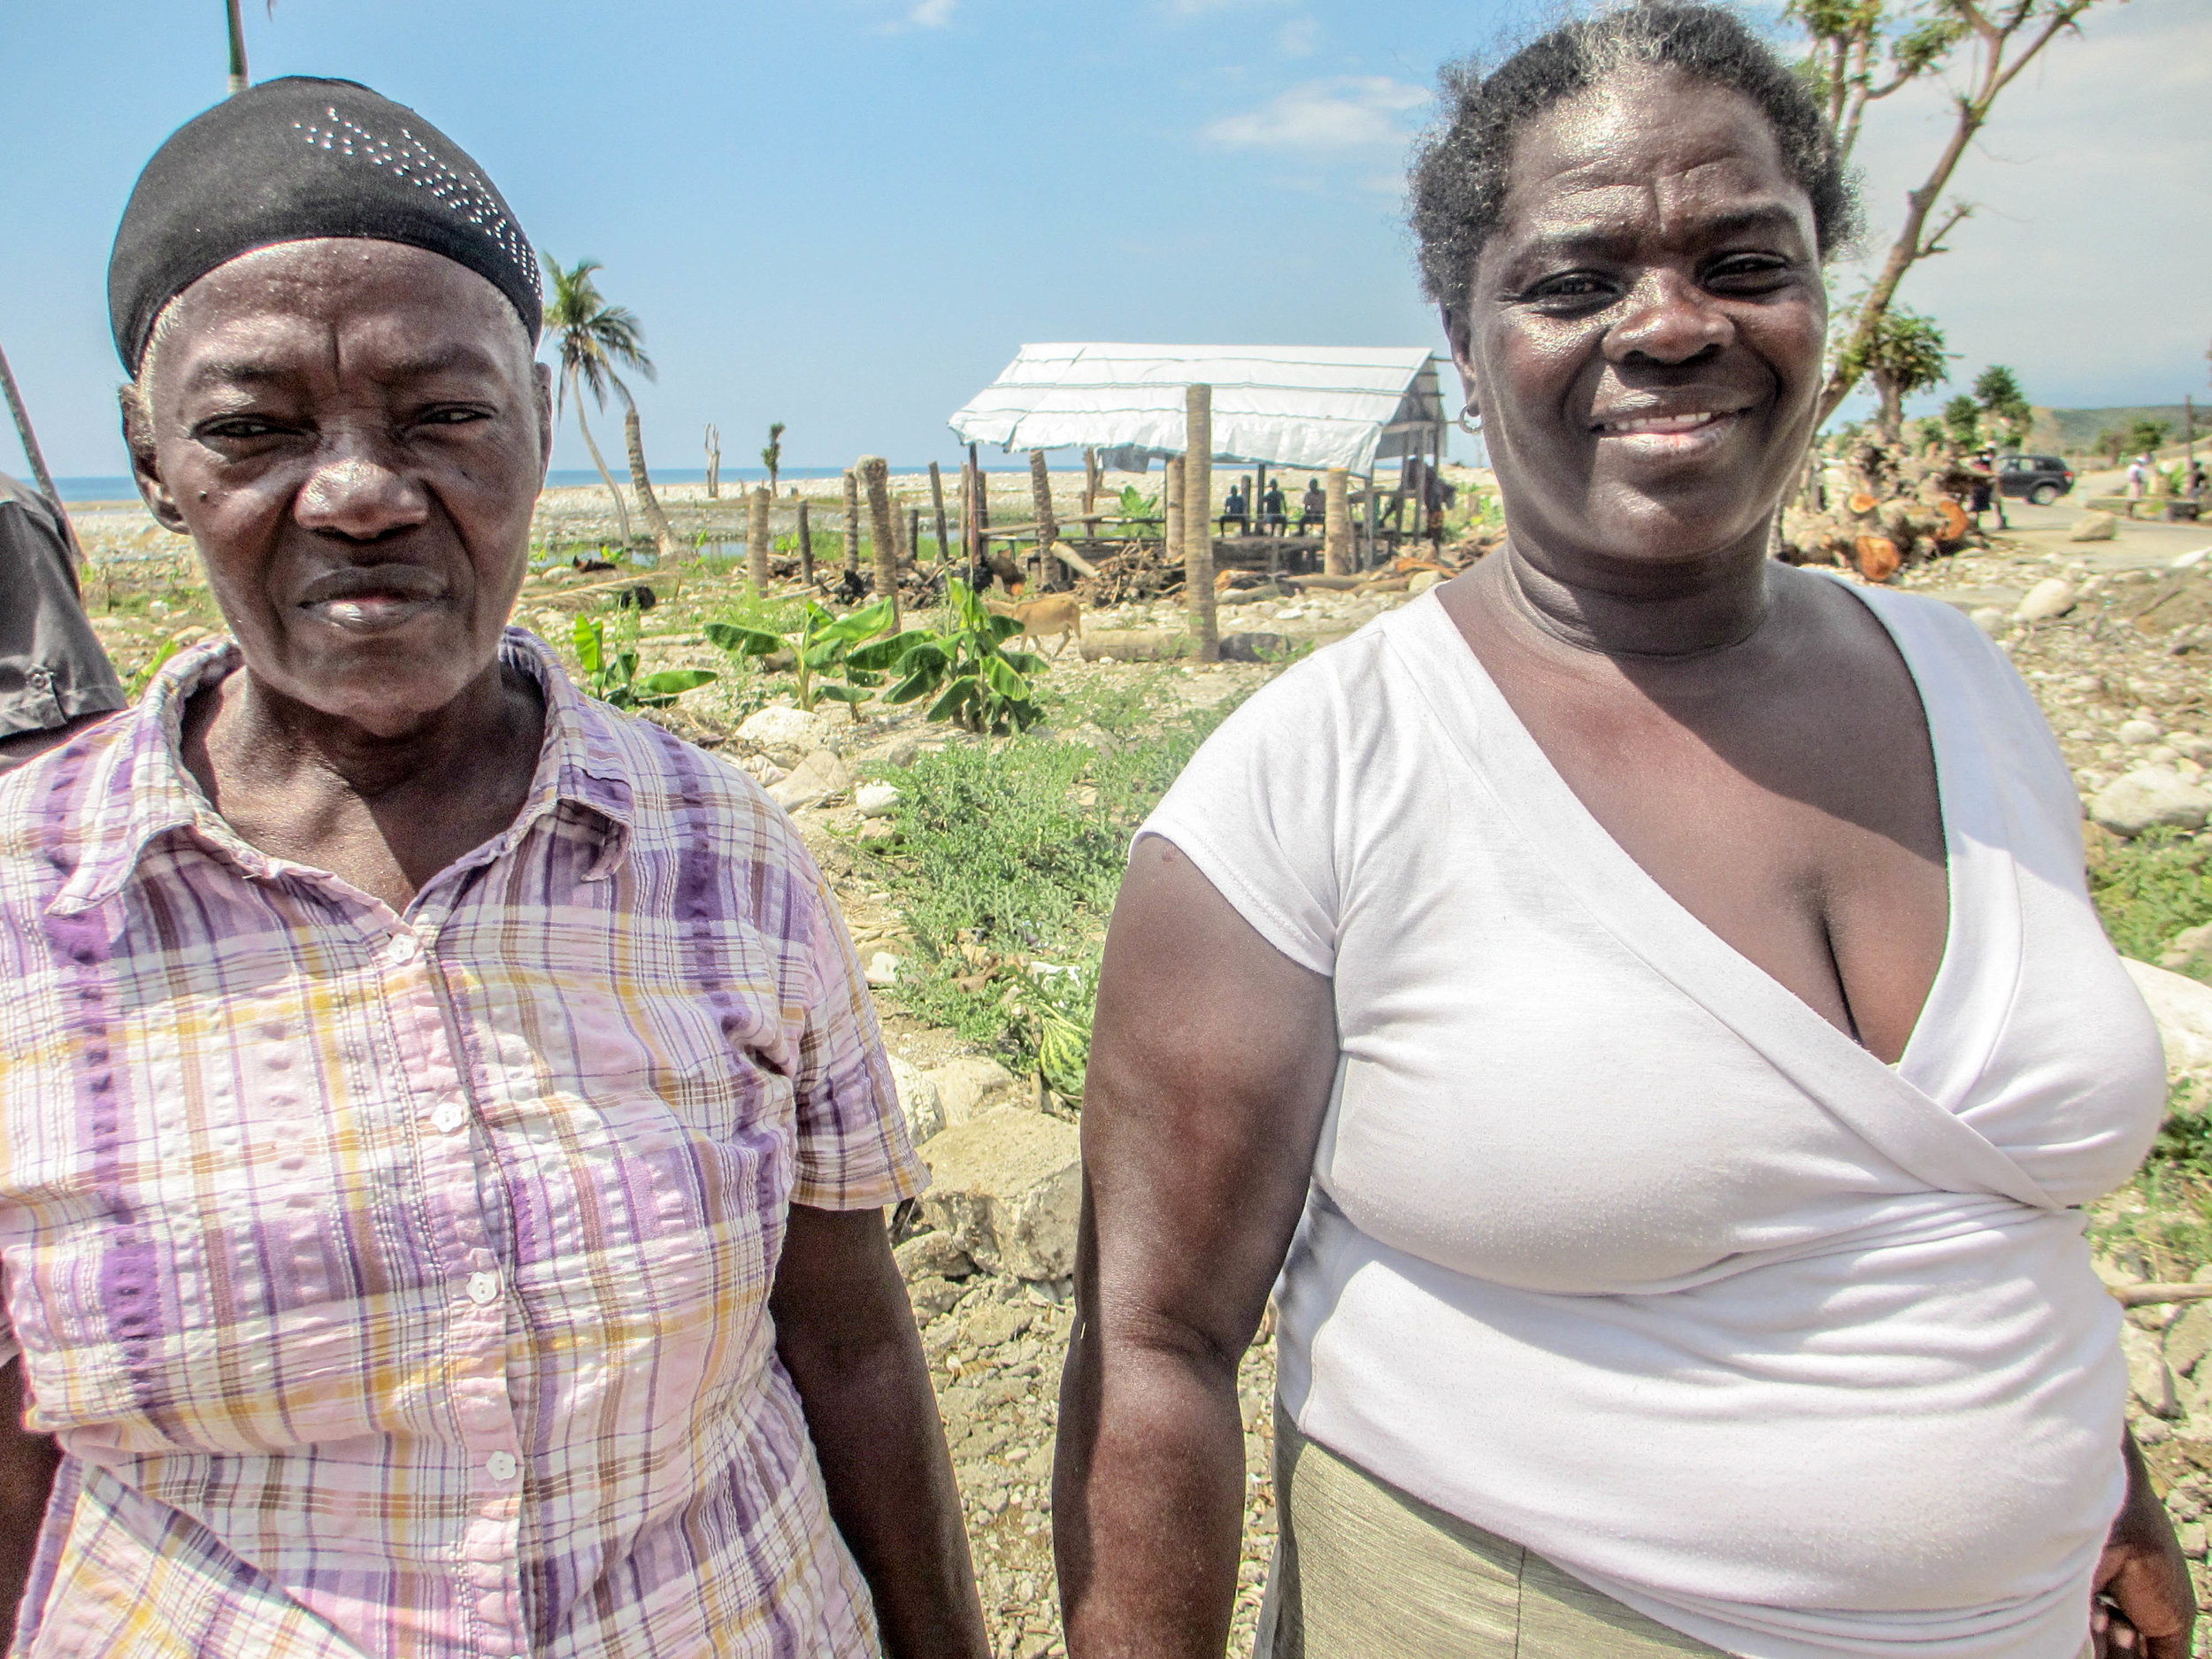 The homeless woman is now living with her sister, seen here. Many Haitian adults and children who lost their homes in the hurricane are relying on family and neighbors for shelter, sharing crowded living quarters. Host families are struggling to meet the added burden.